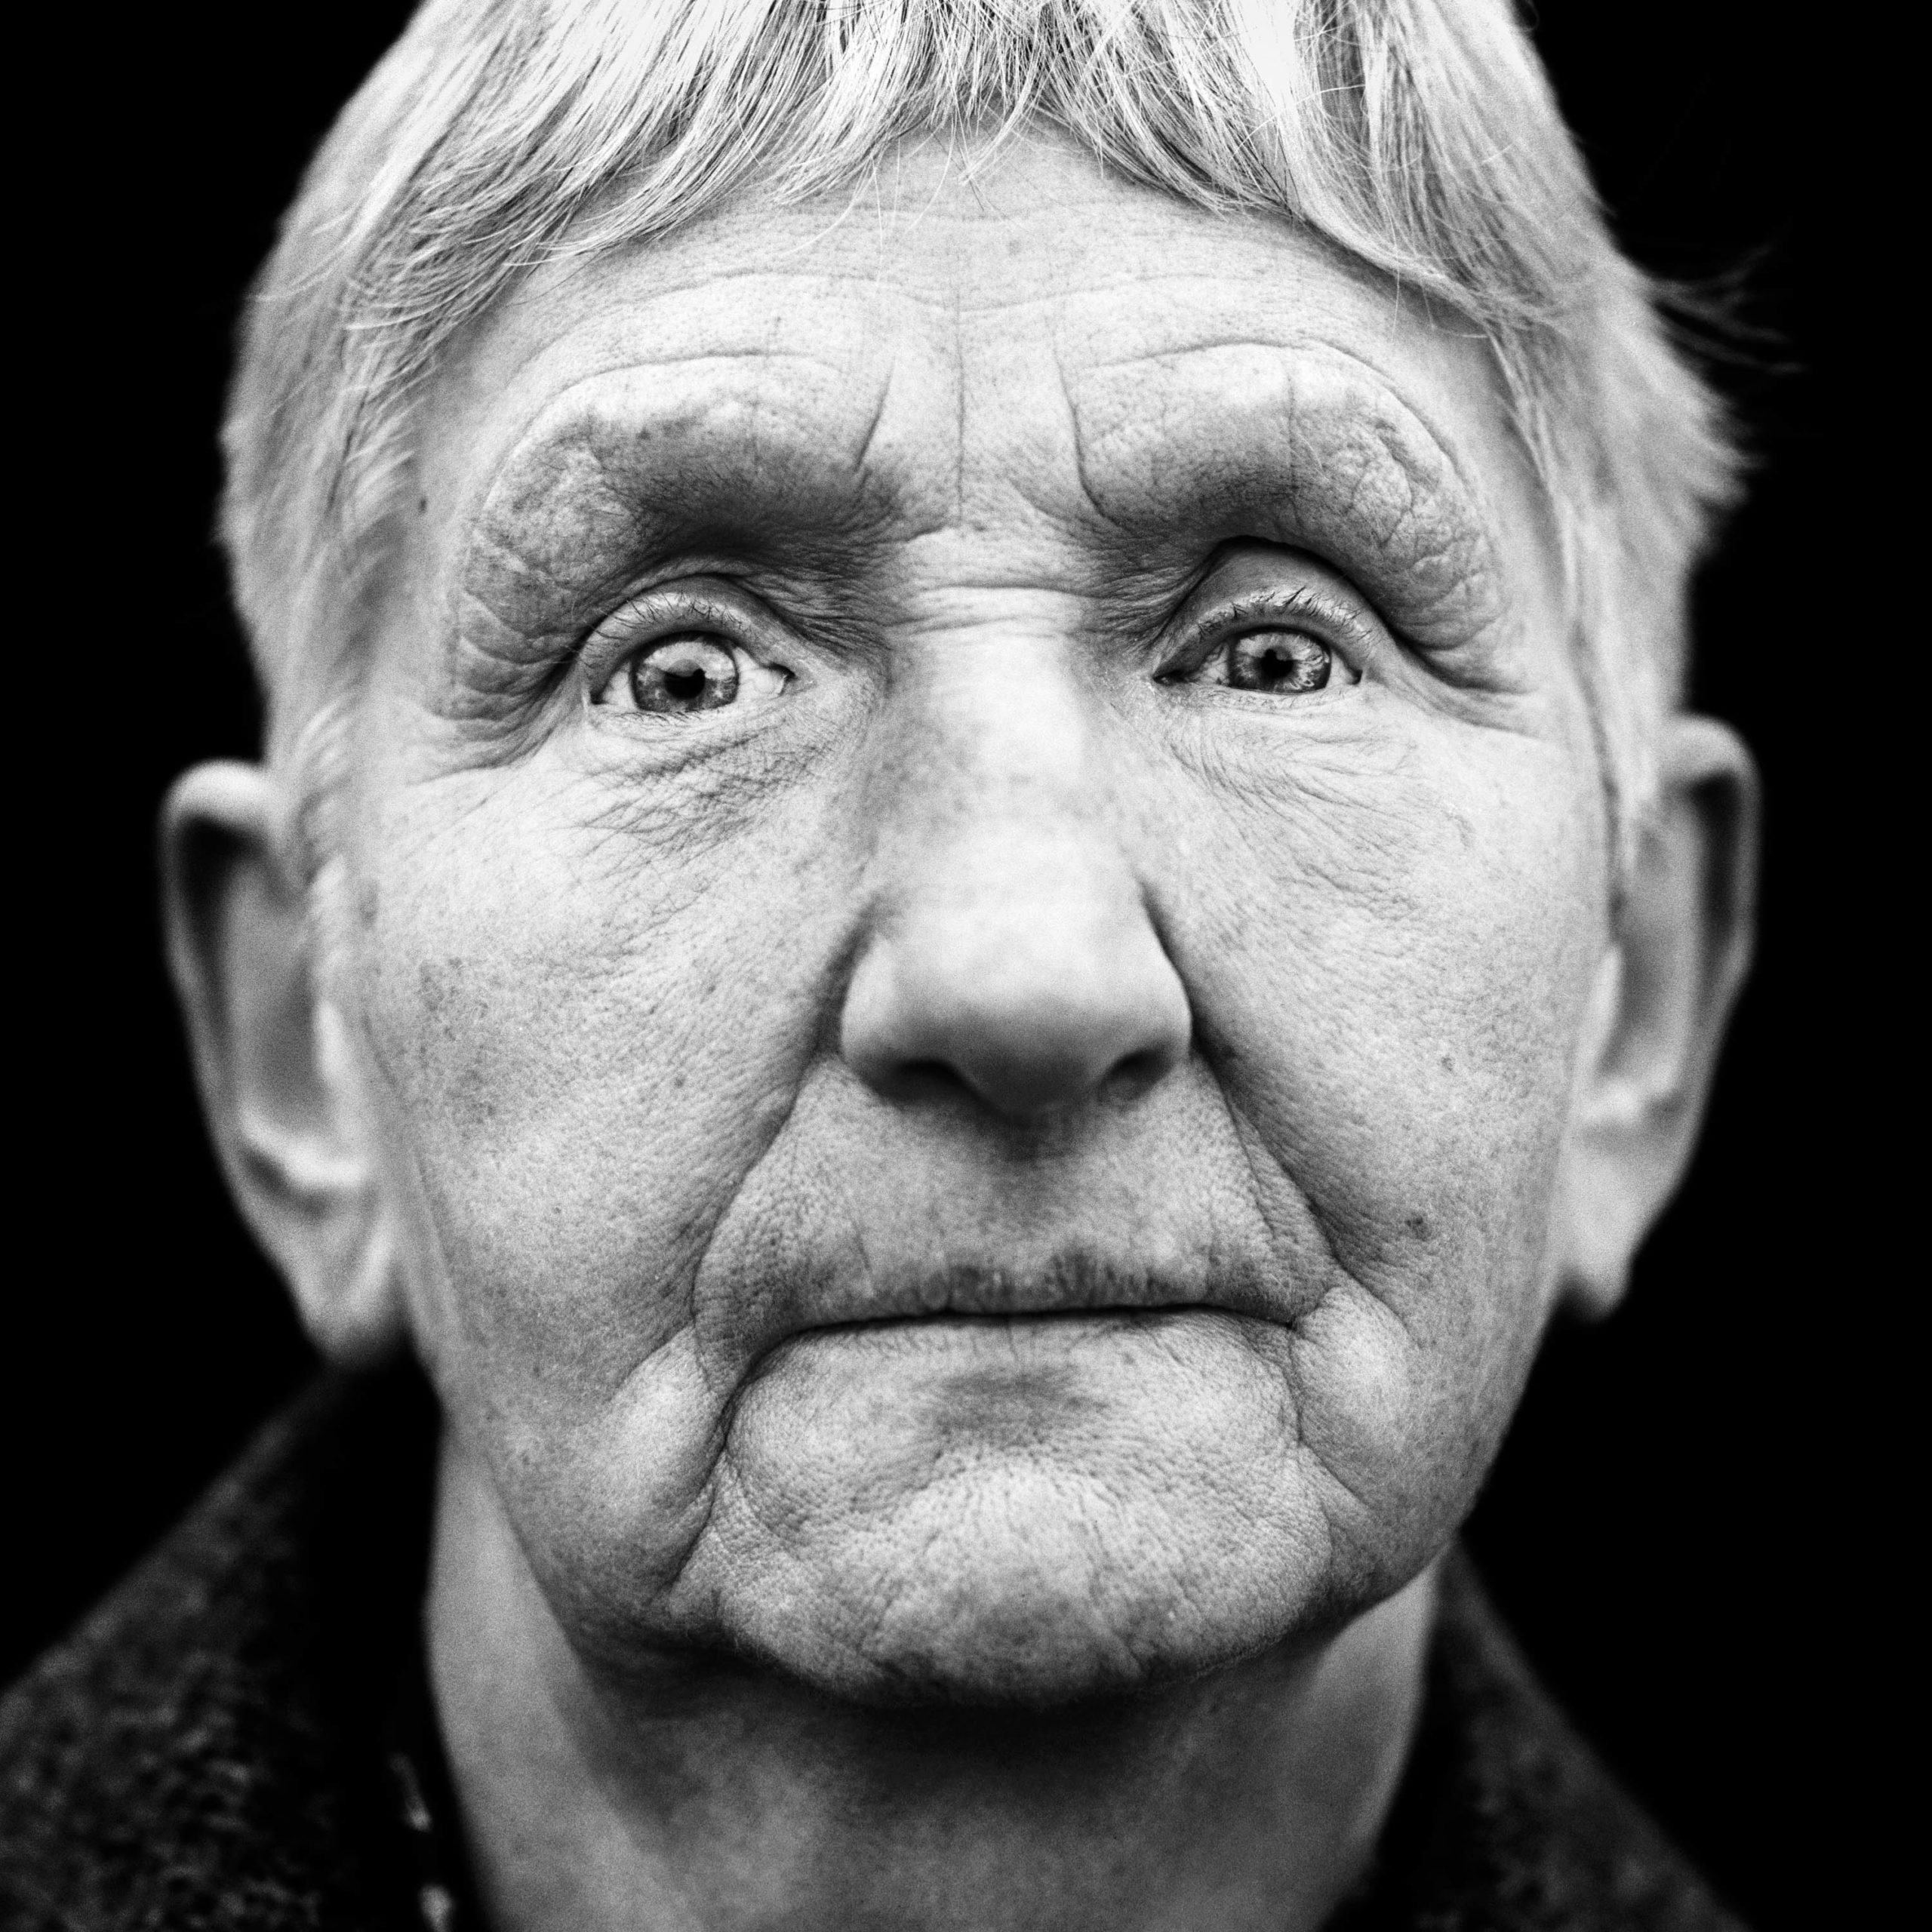 """Annemarie May (Germany, 1932). Interview outtake: """"I can no longer see the difference between light and dark. I feel like I'm living in a prison."""""""